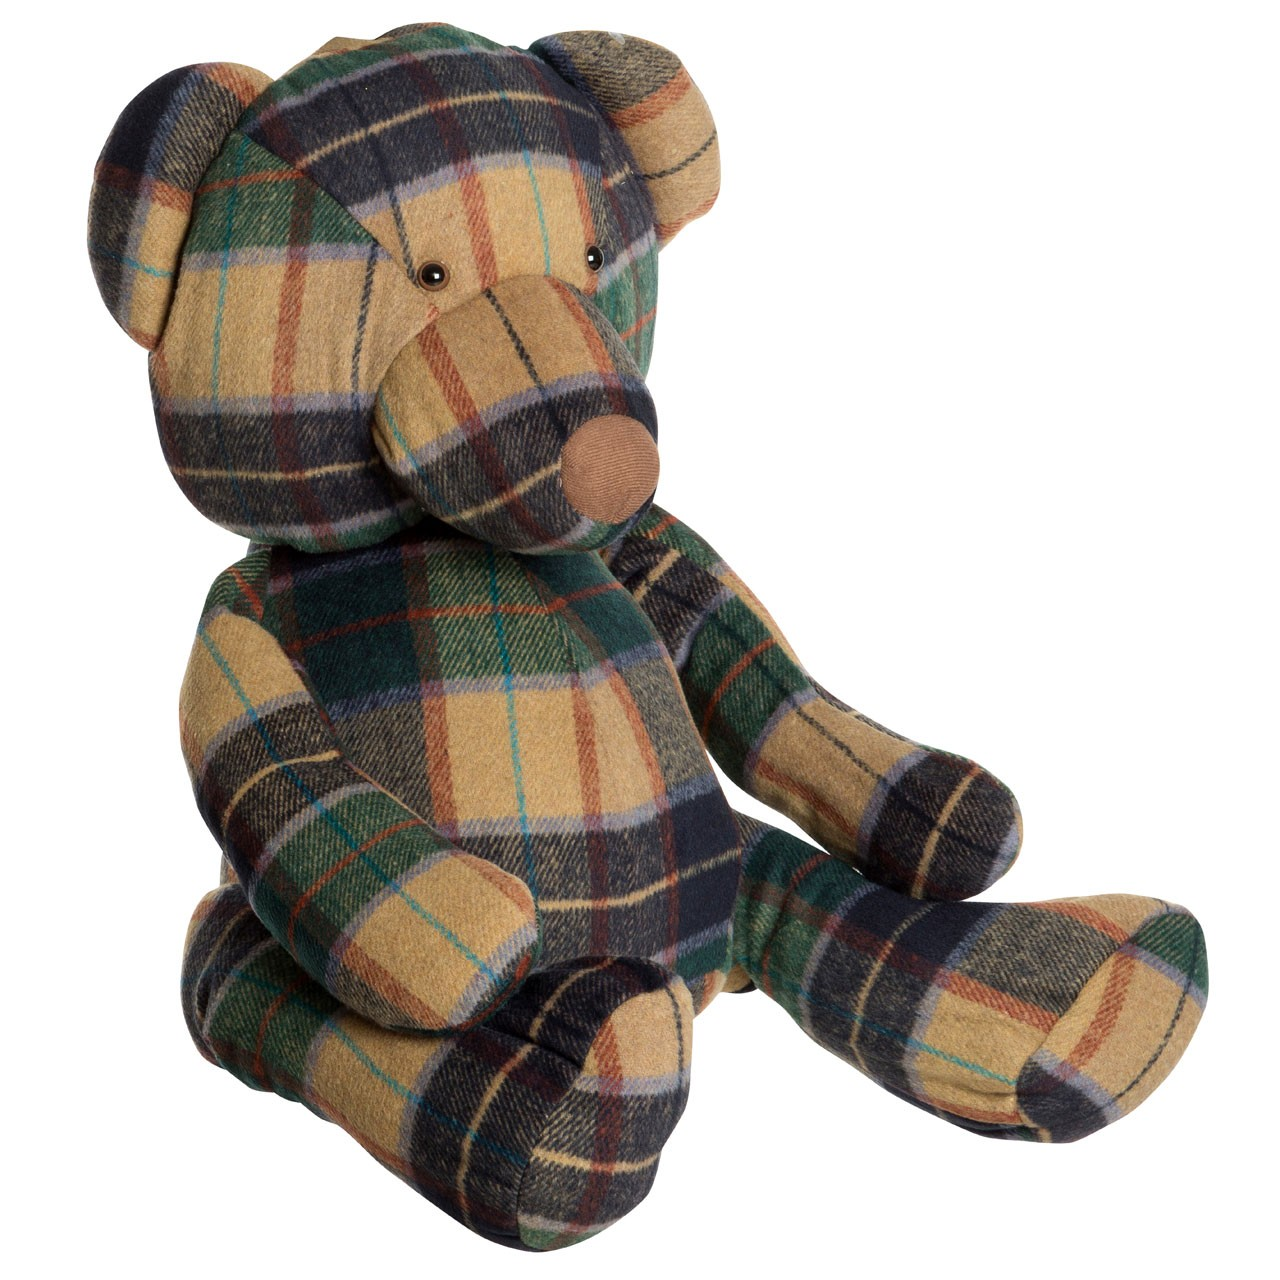 Prime Furnishing Heritage Bear Door Stop - Large, Green